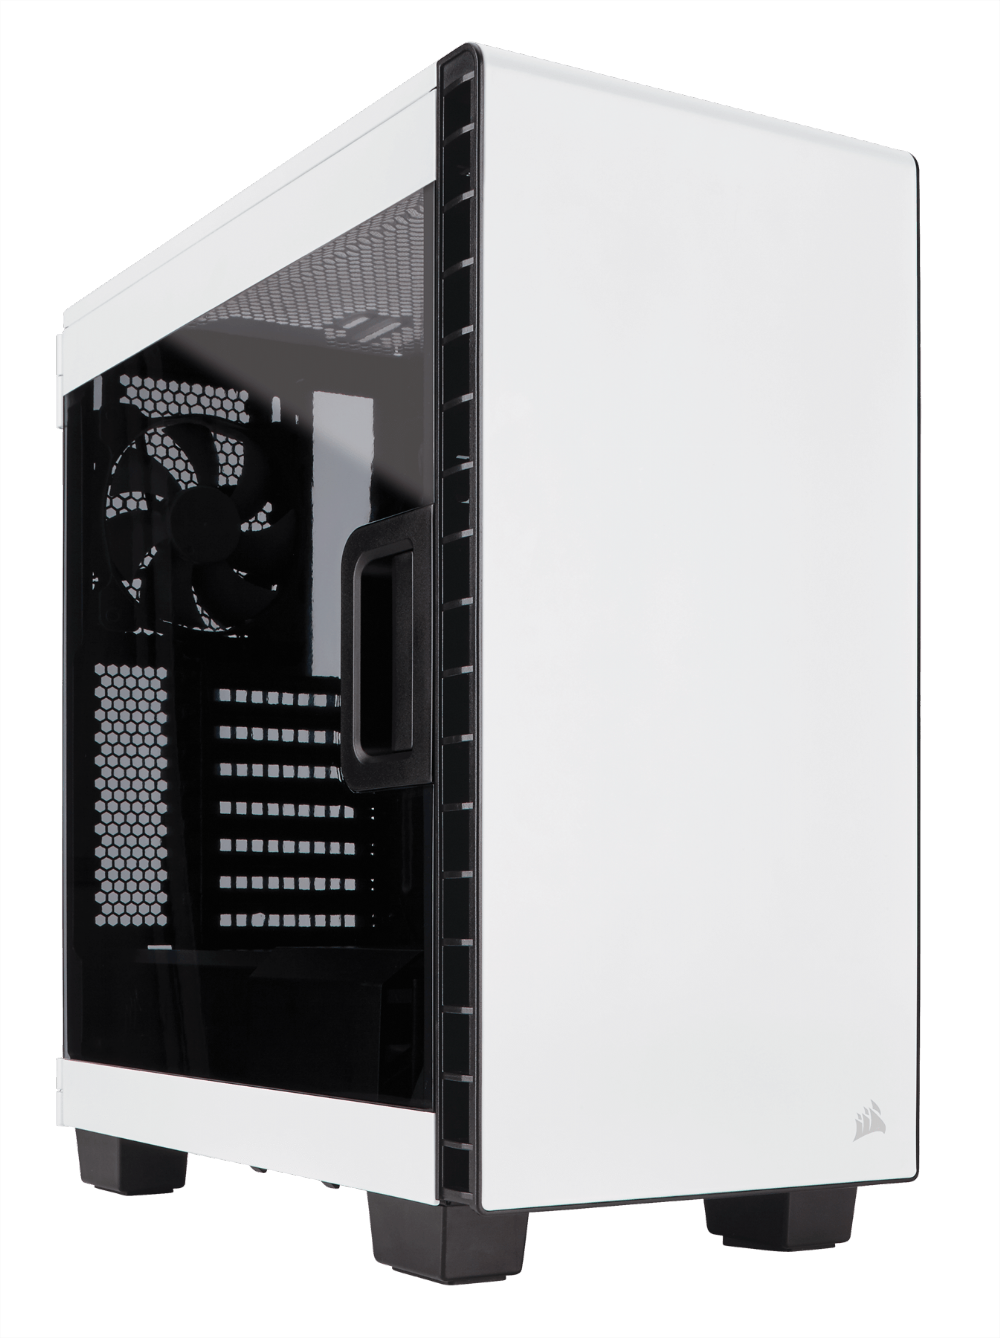 ktc_corsair-carbide-series-400c-white-mid-tower-case_full_05072017_100704